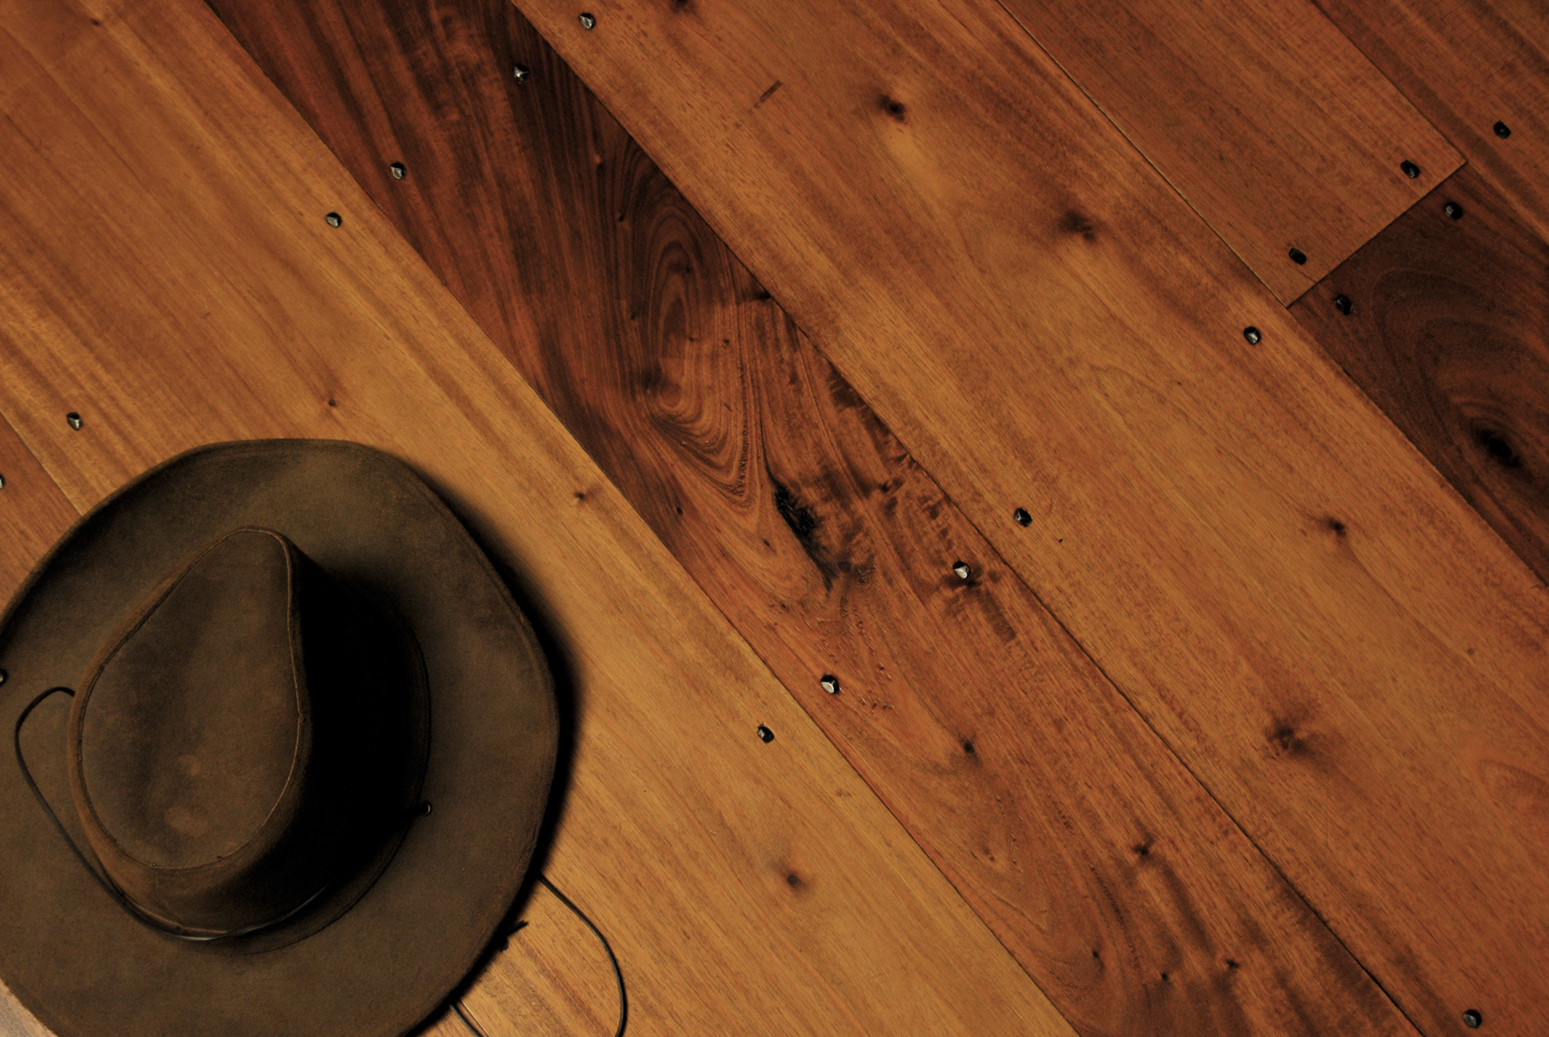 web96-jt-studio-hat-on-mahogany-wide-plank-floor.jpg